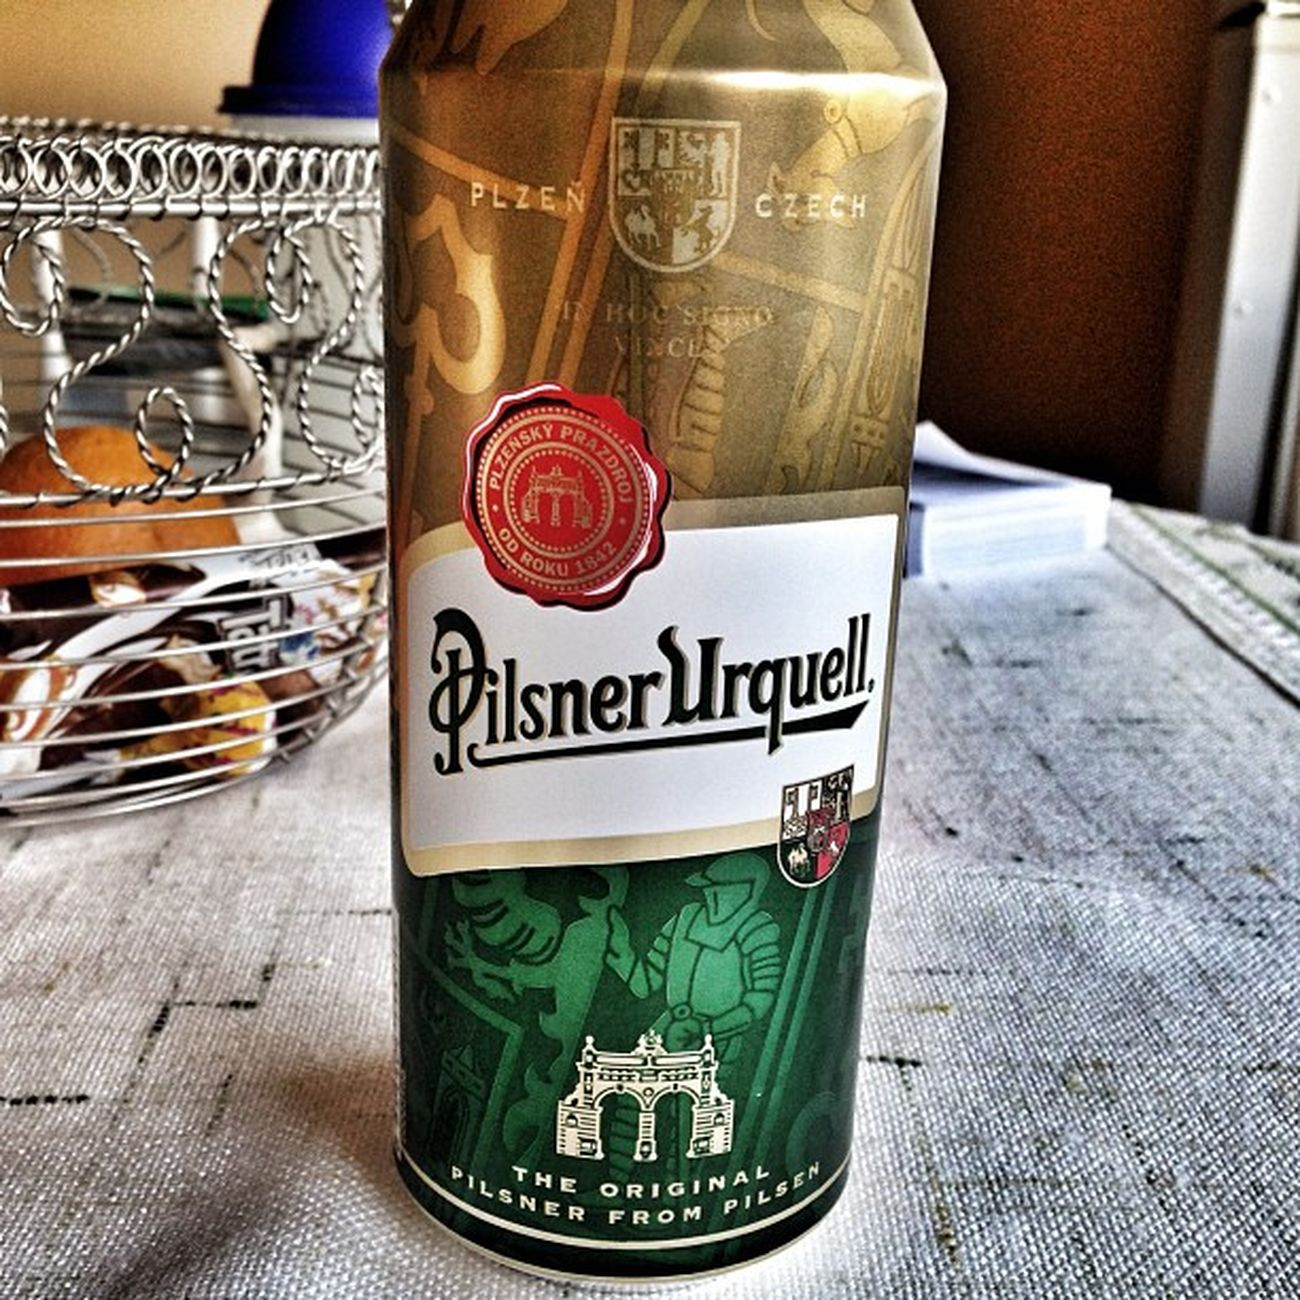 Beer Bier Pivo Pilsnerurquell pilsenczsnapseed pic picoftheday photooftheday instapic instacool instagood instagram instamood instadaily instaplace instagramers ilava slovakia slovensko original